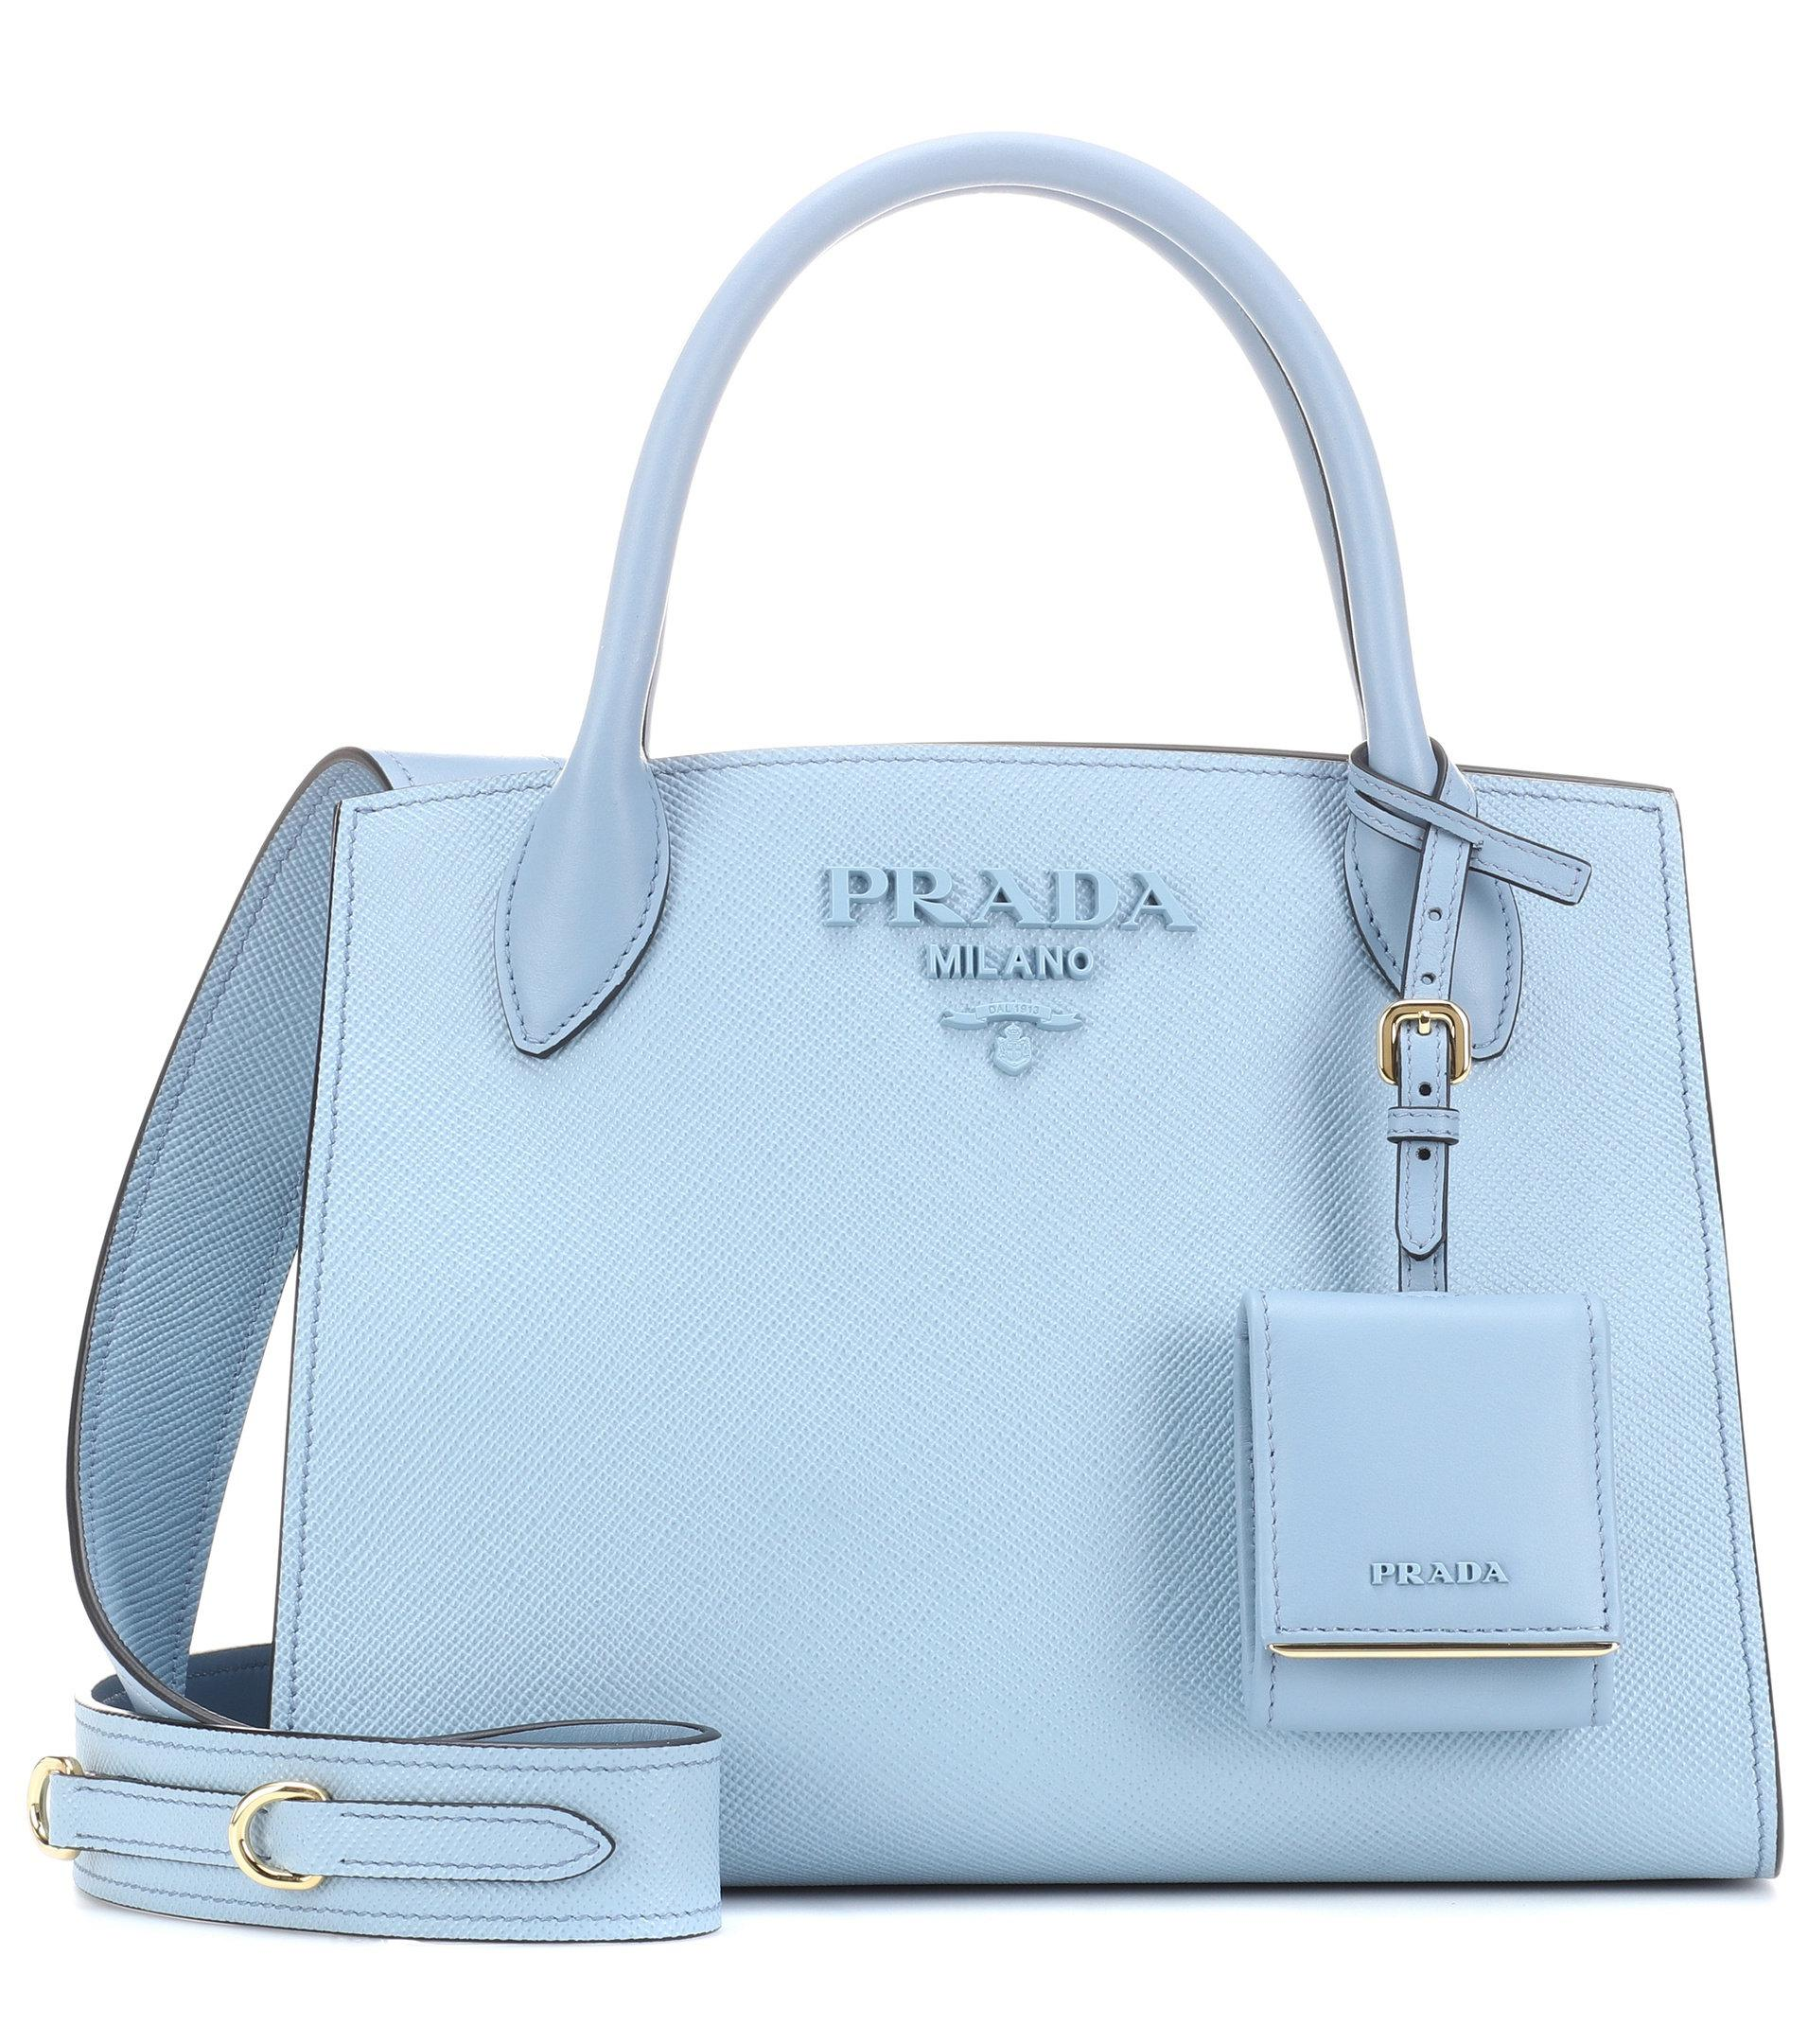 405ee1c5dbf8 ... for sale d0e0c fa297 where can i buy lyst prada saffiano leather tote  in blue 35d80 787aa ...